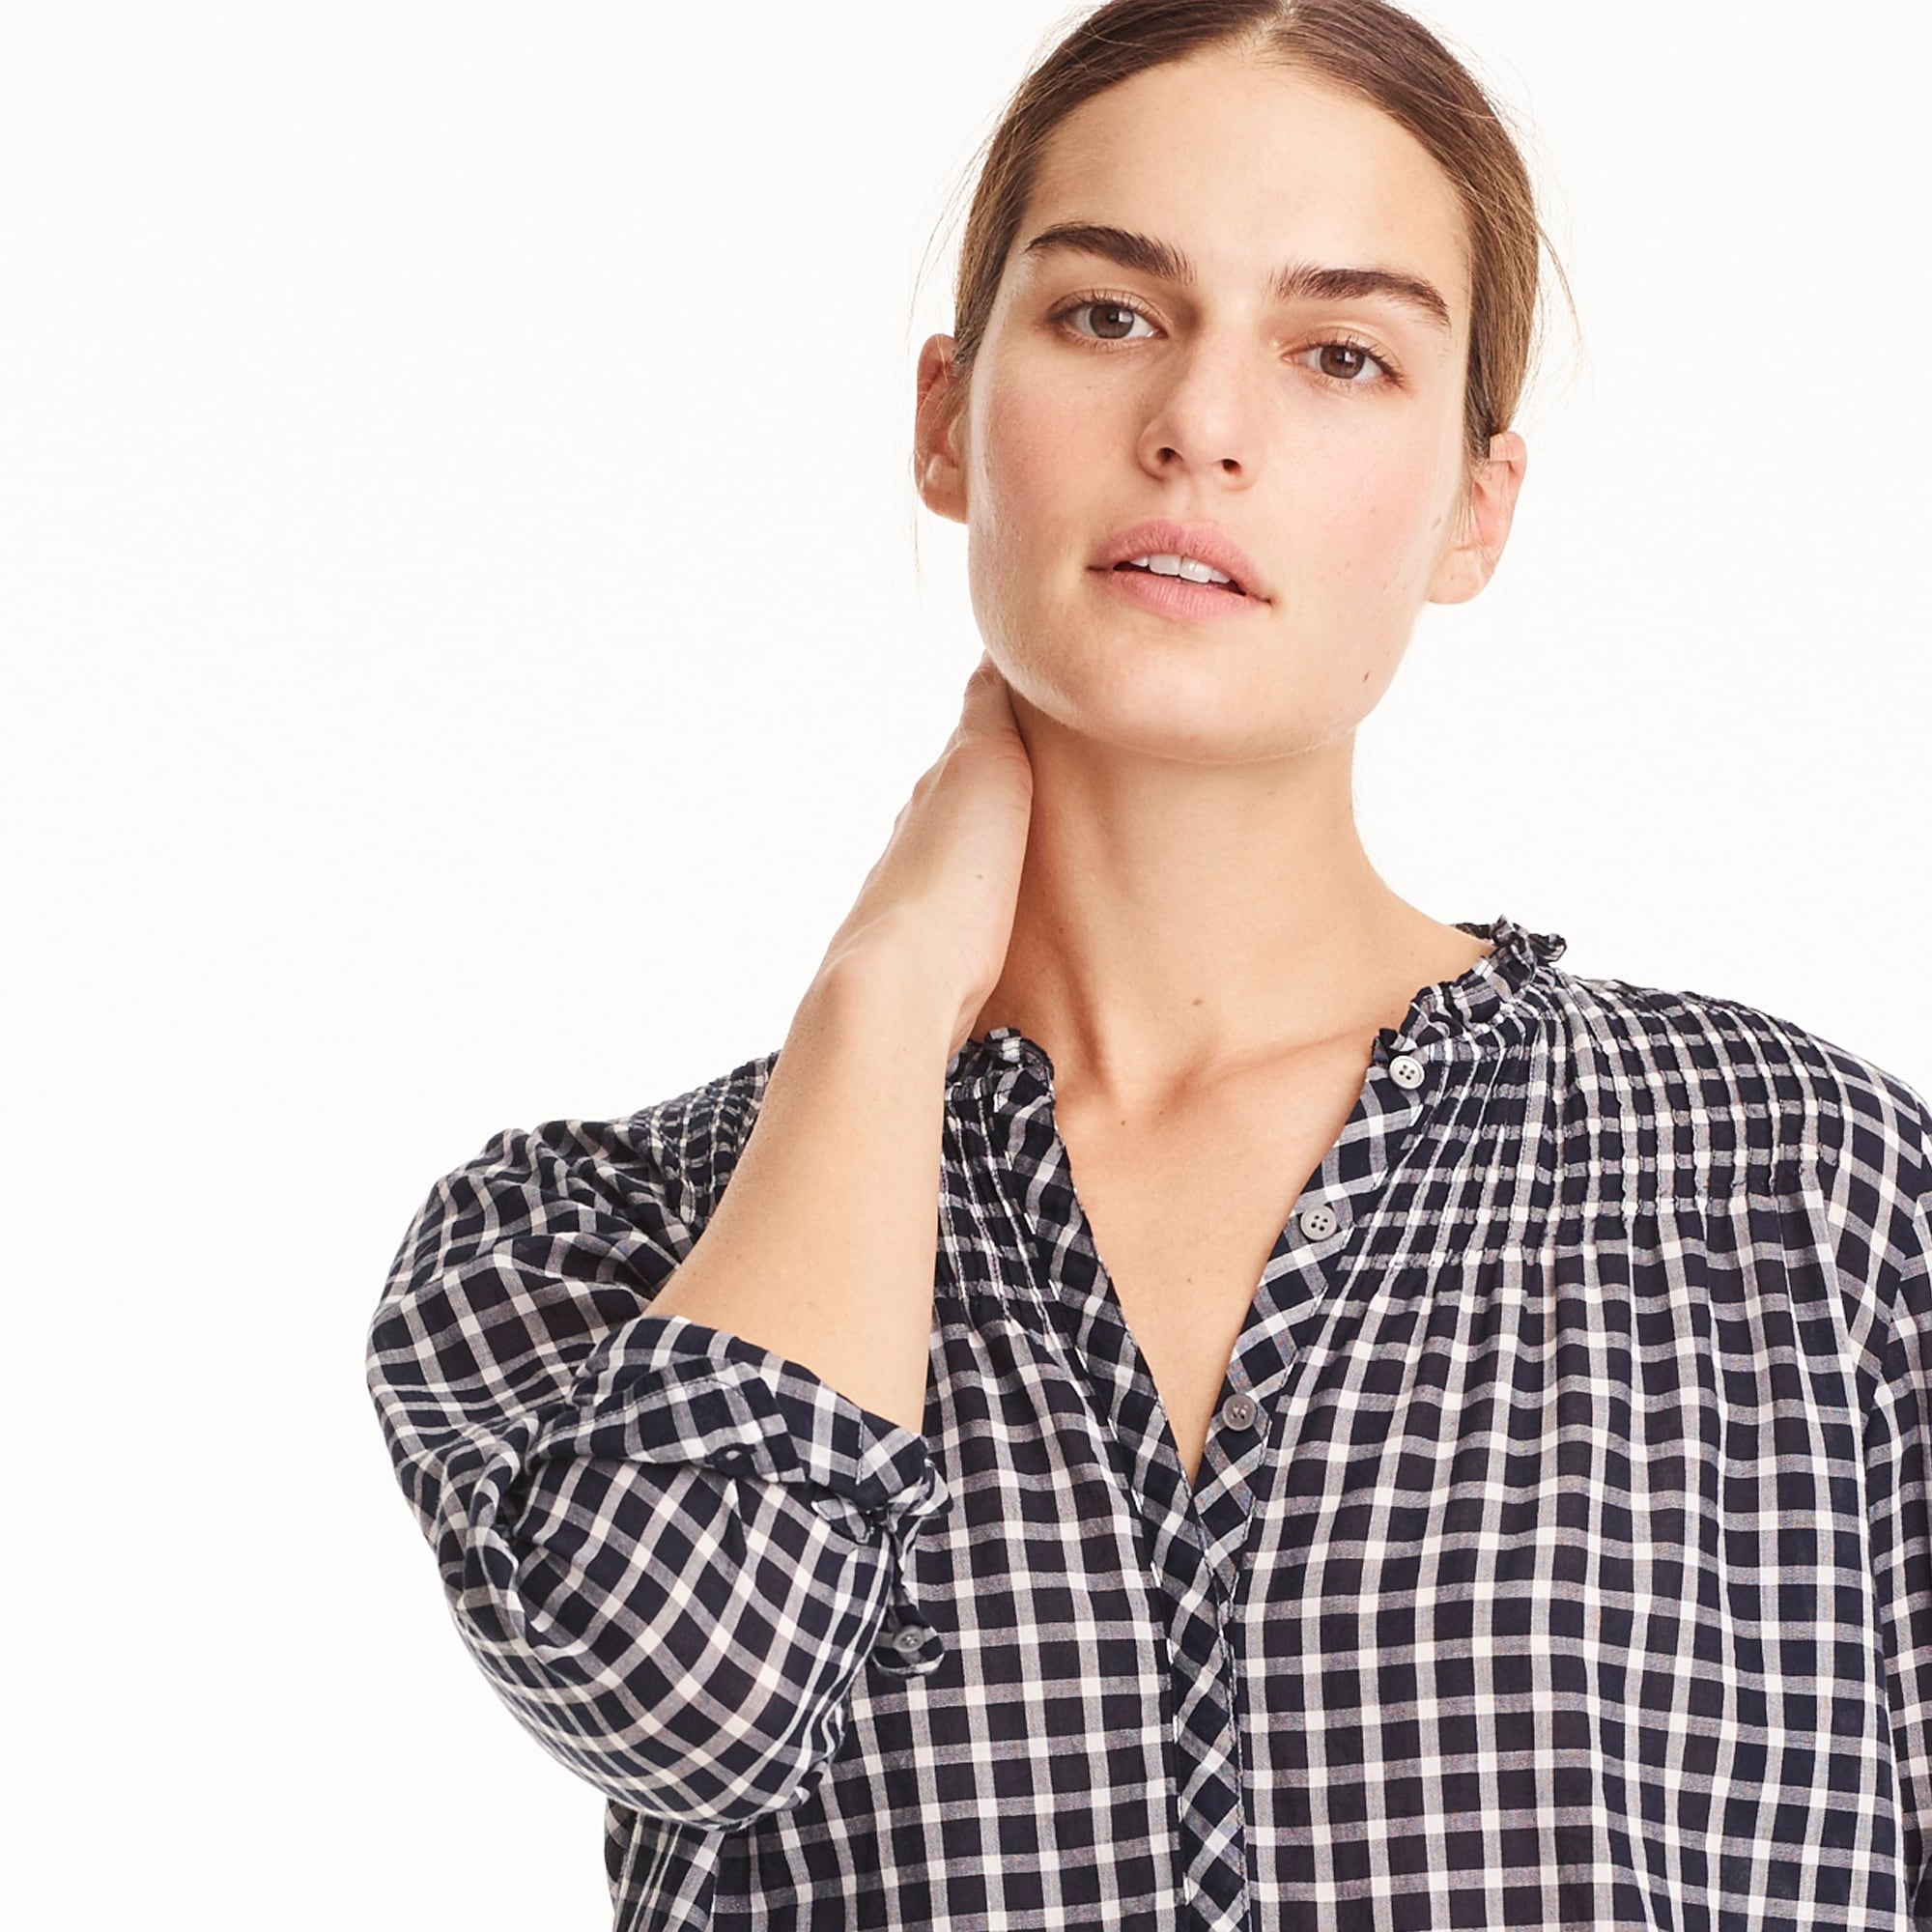 Image 3 for Petite ruffle classic popover shirt in mini windowpane